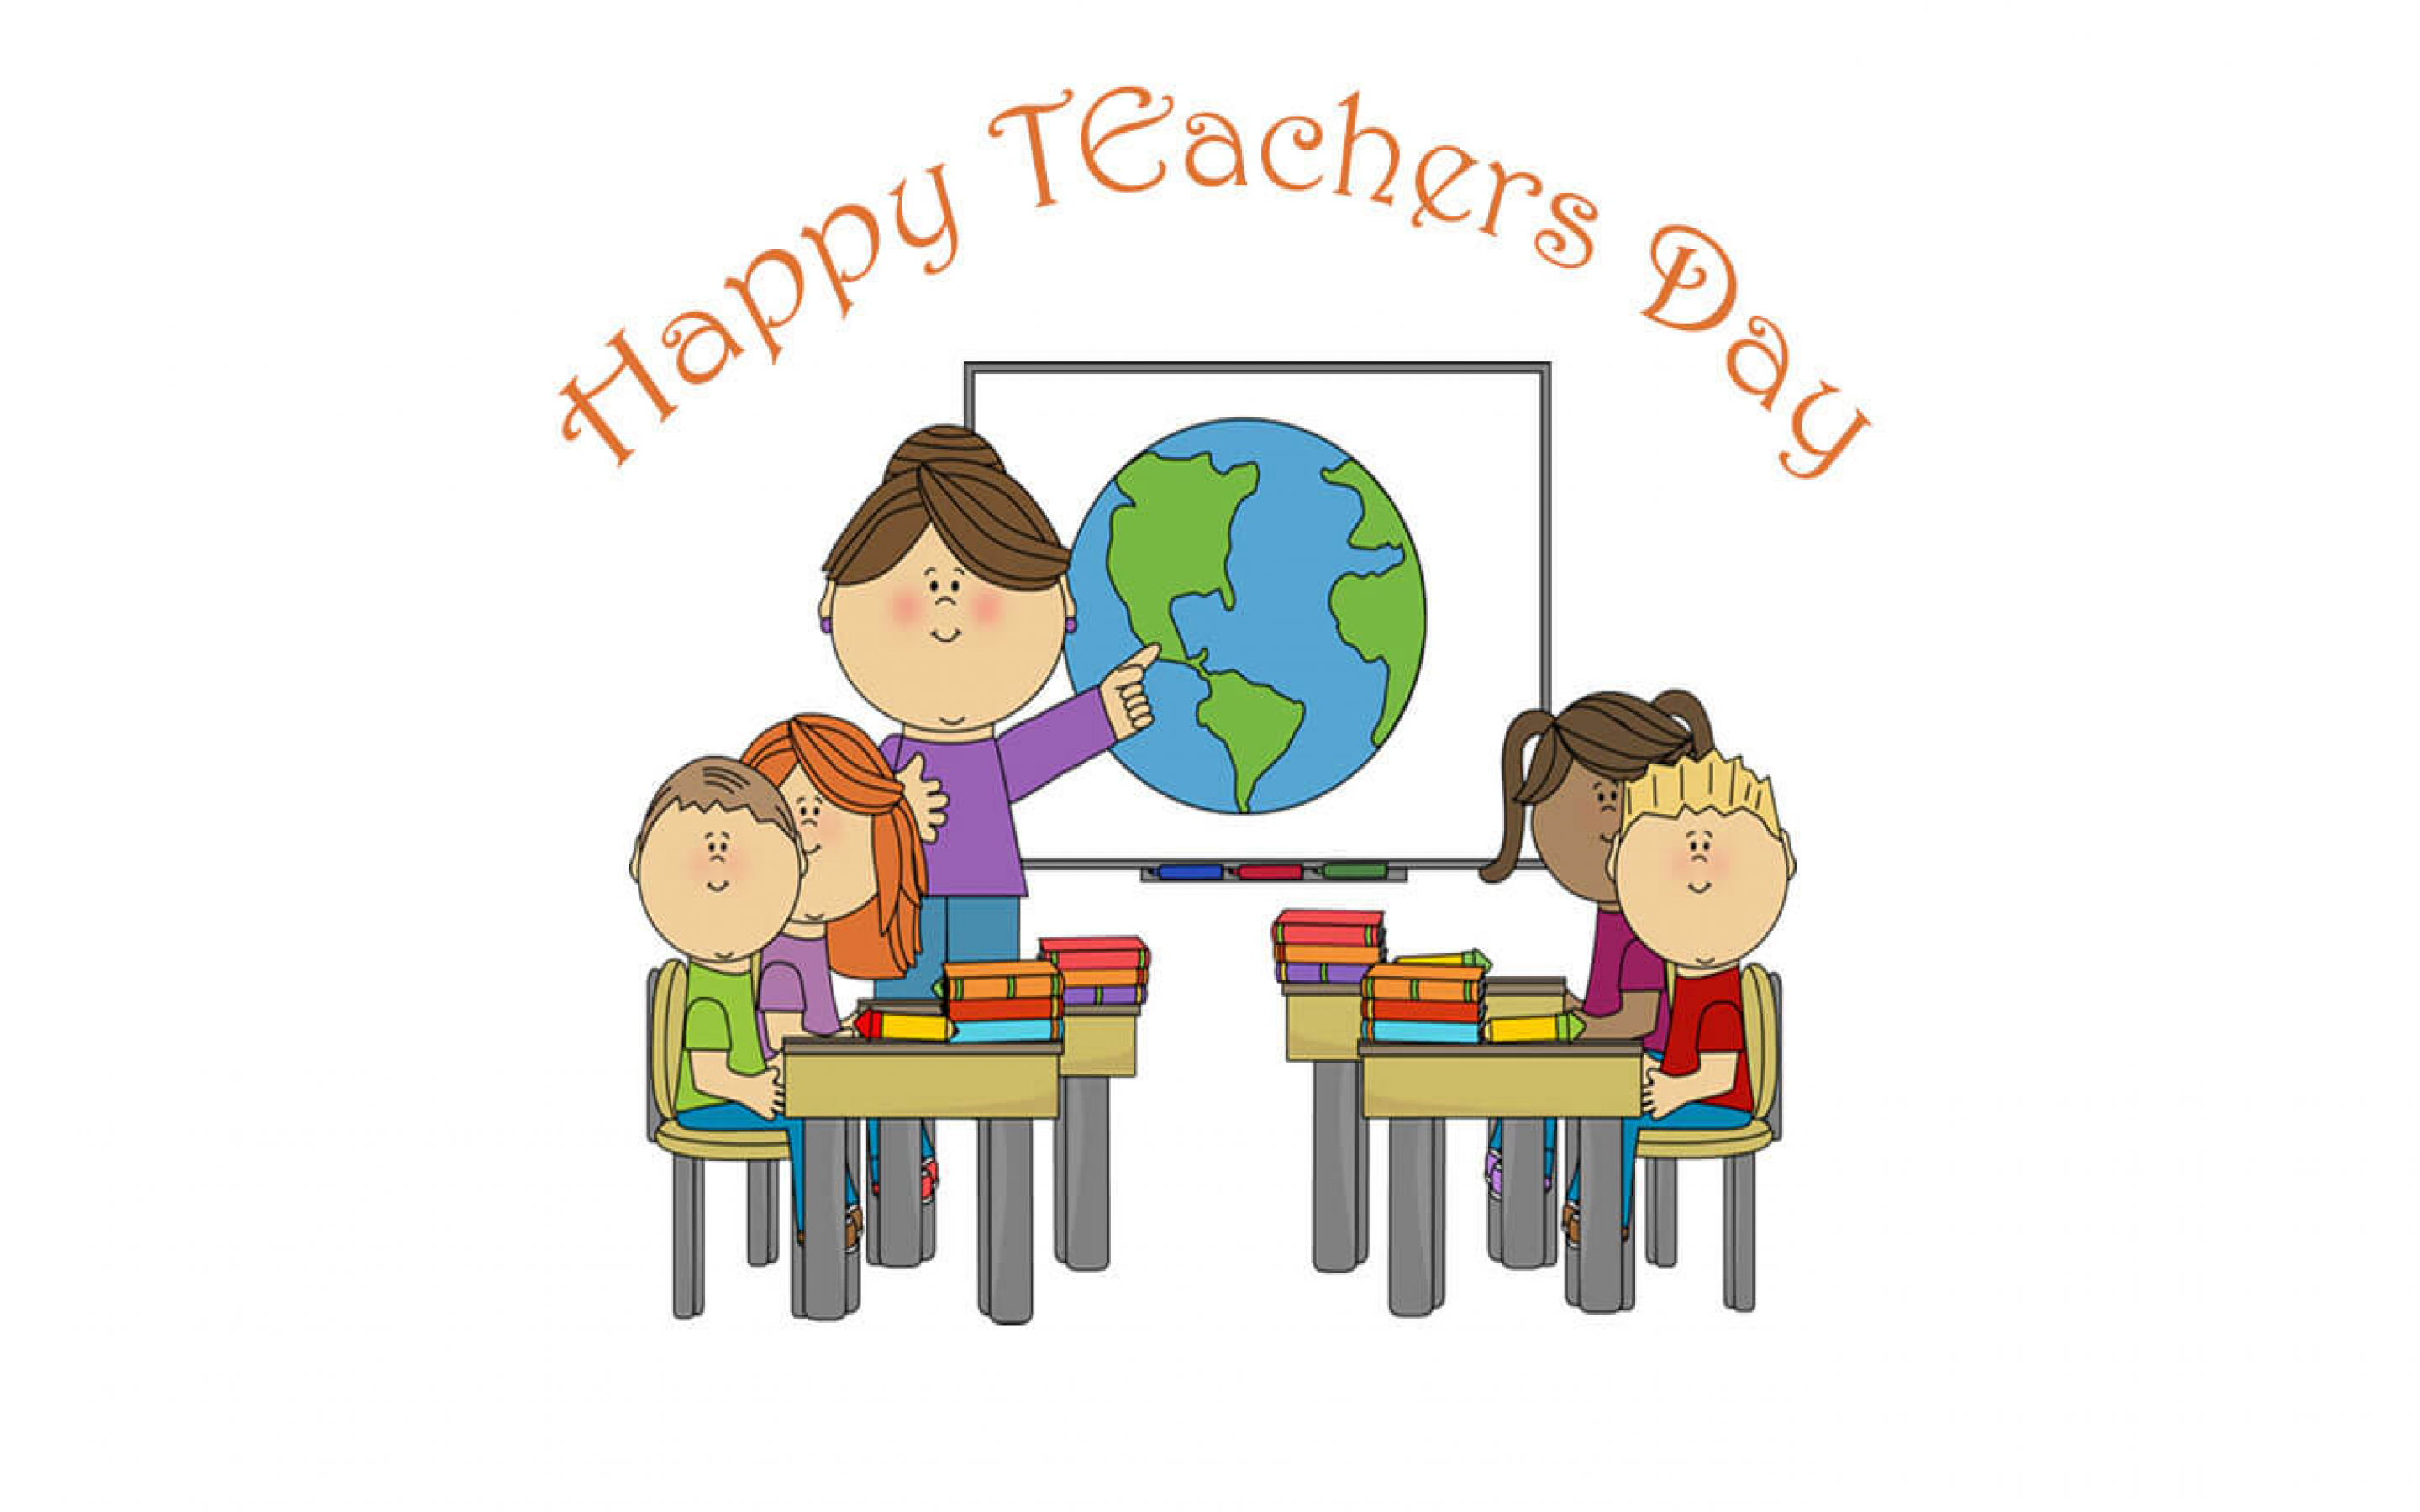 Happy teachers day expansion hd wallpaper wide screen resolutions altavistaventures Choice Image